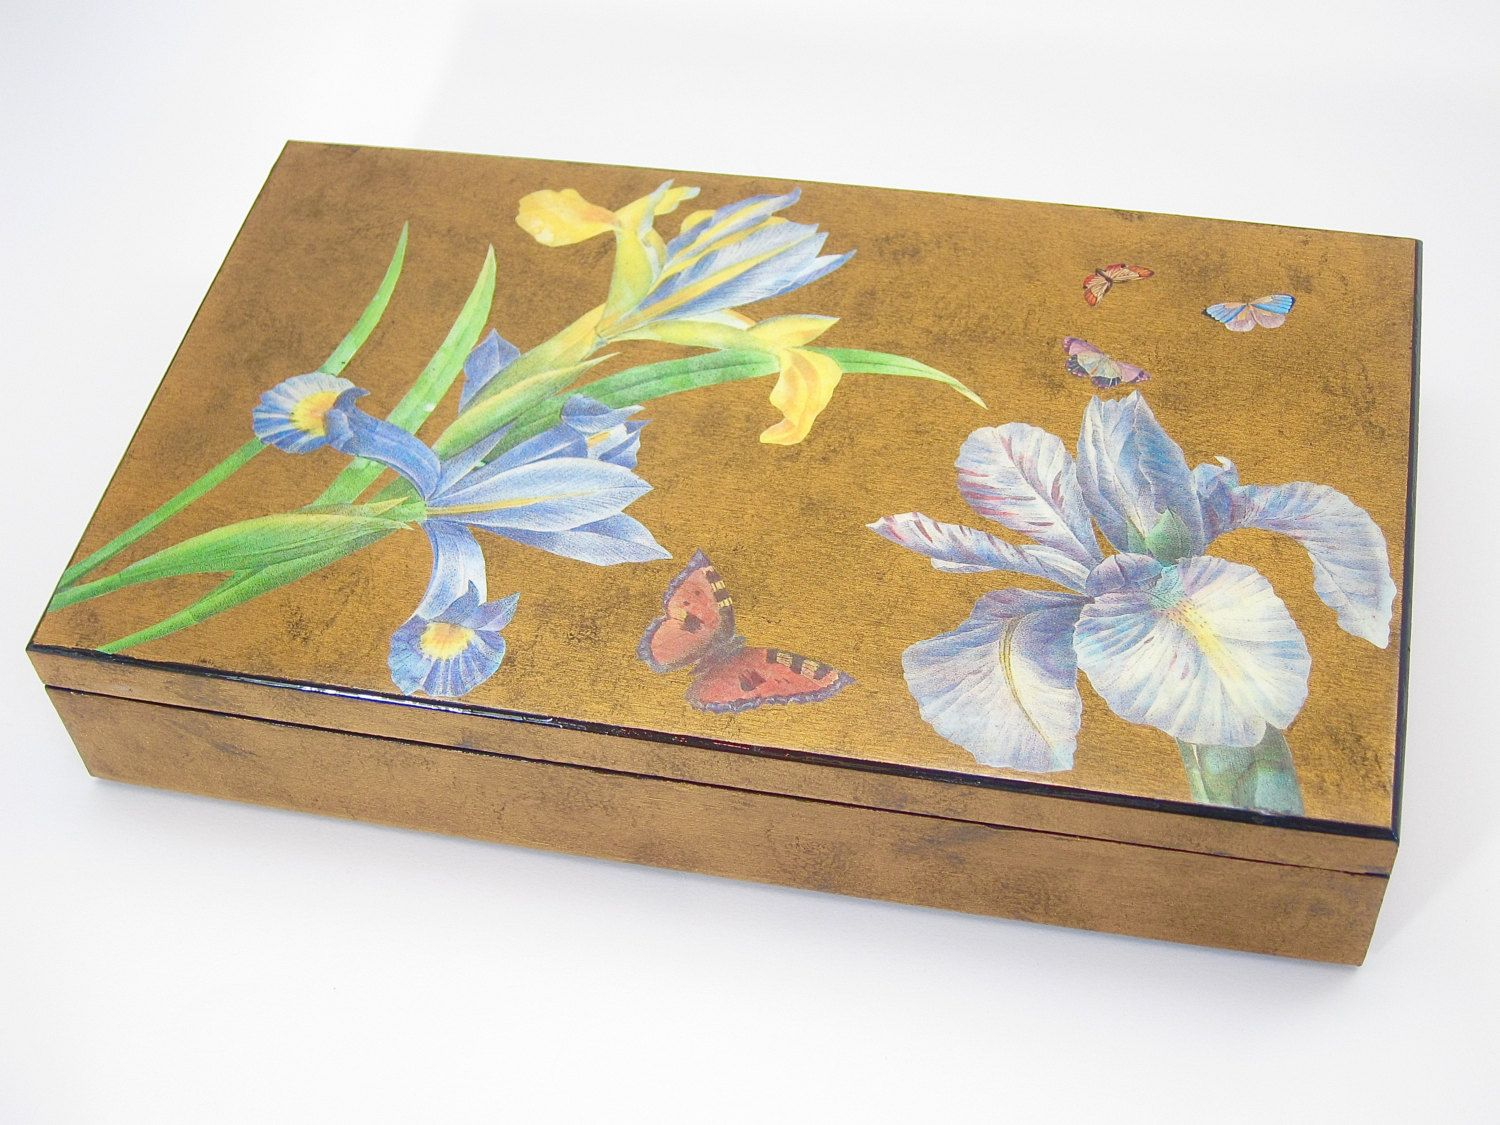 Where To Buy Decorative Boxes Japanese Style Decoupage Box Gold And Blue Decorative Box Home